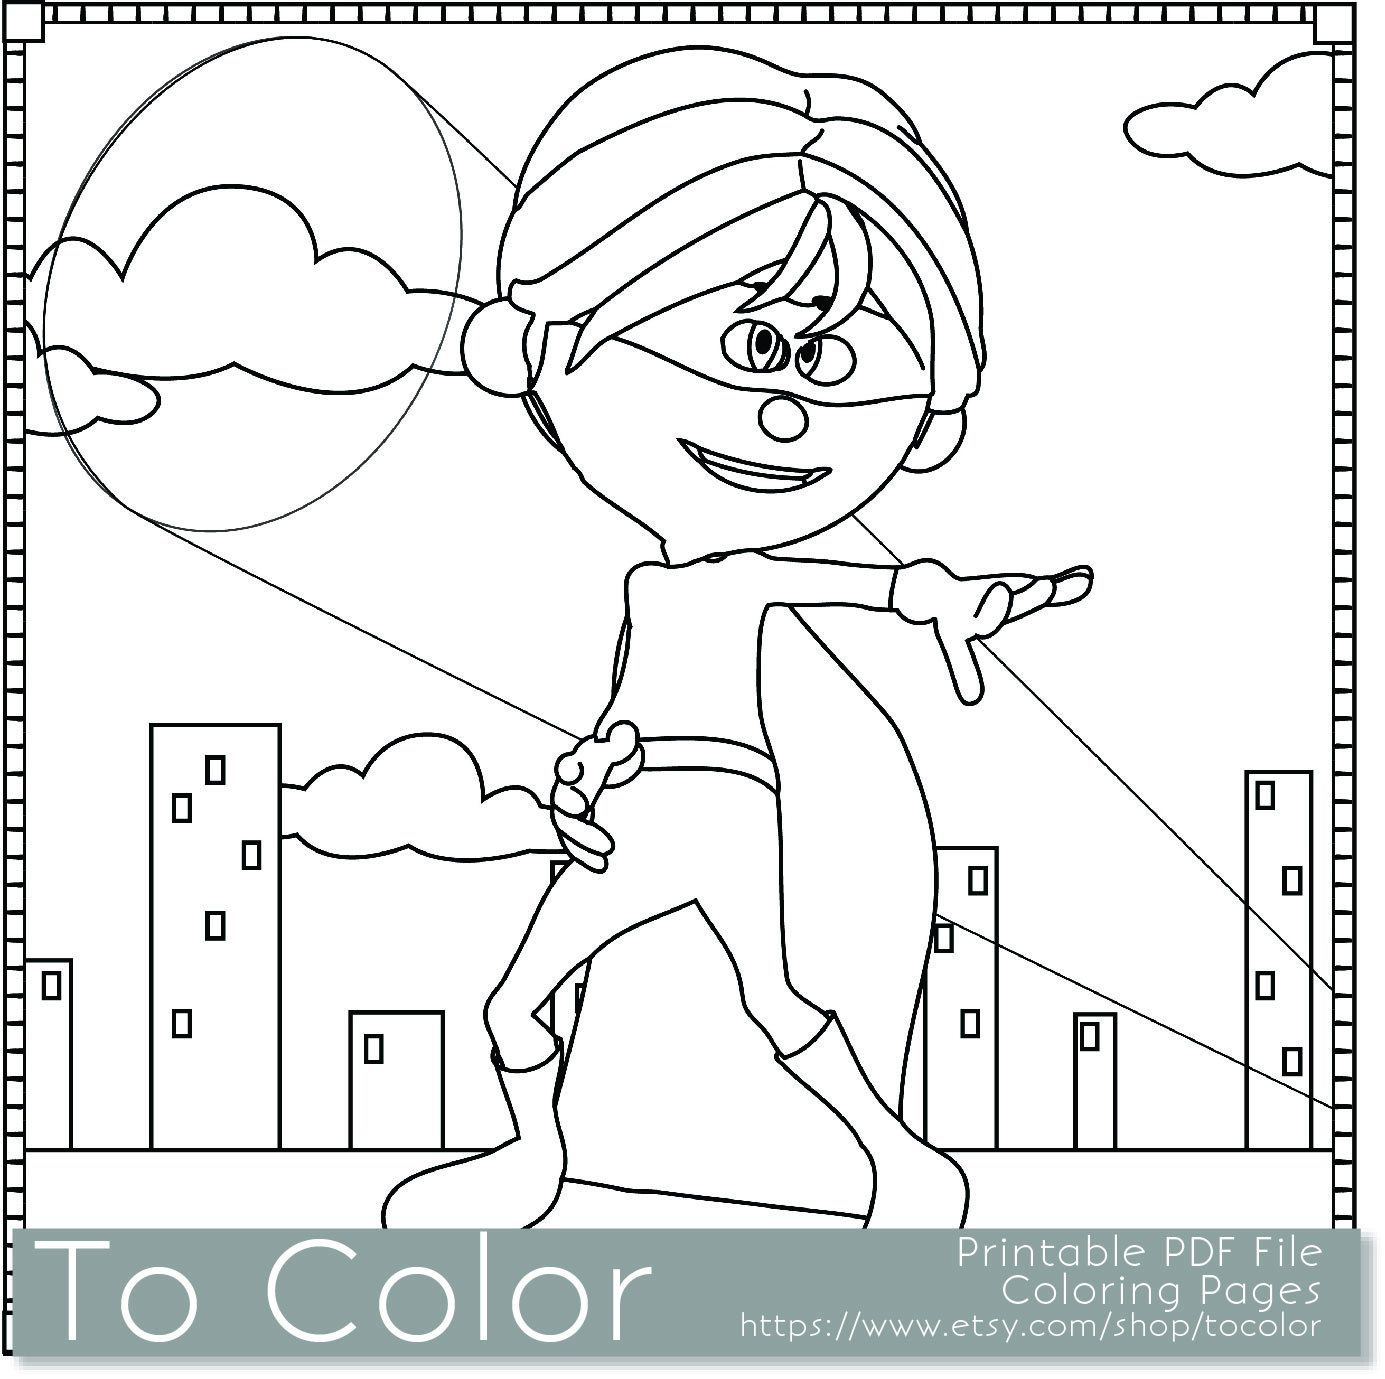 Awesome Coloring Pages For Kids Pdf 71 Printable Superhero Boy Coloring